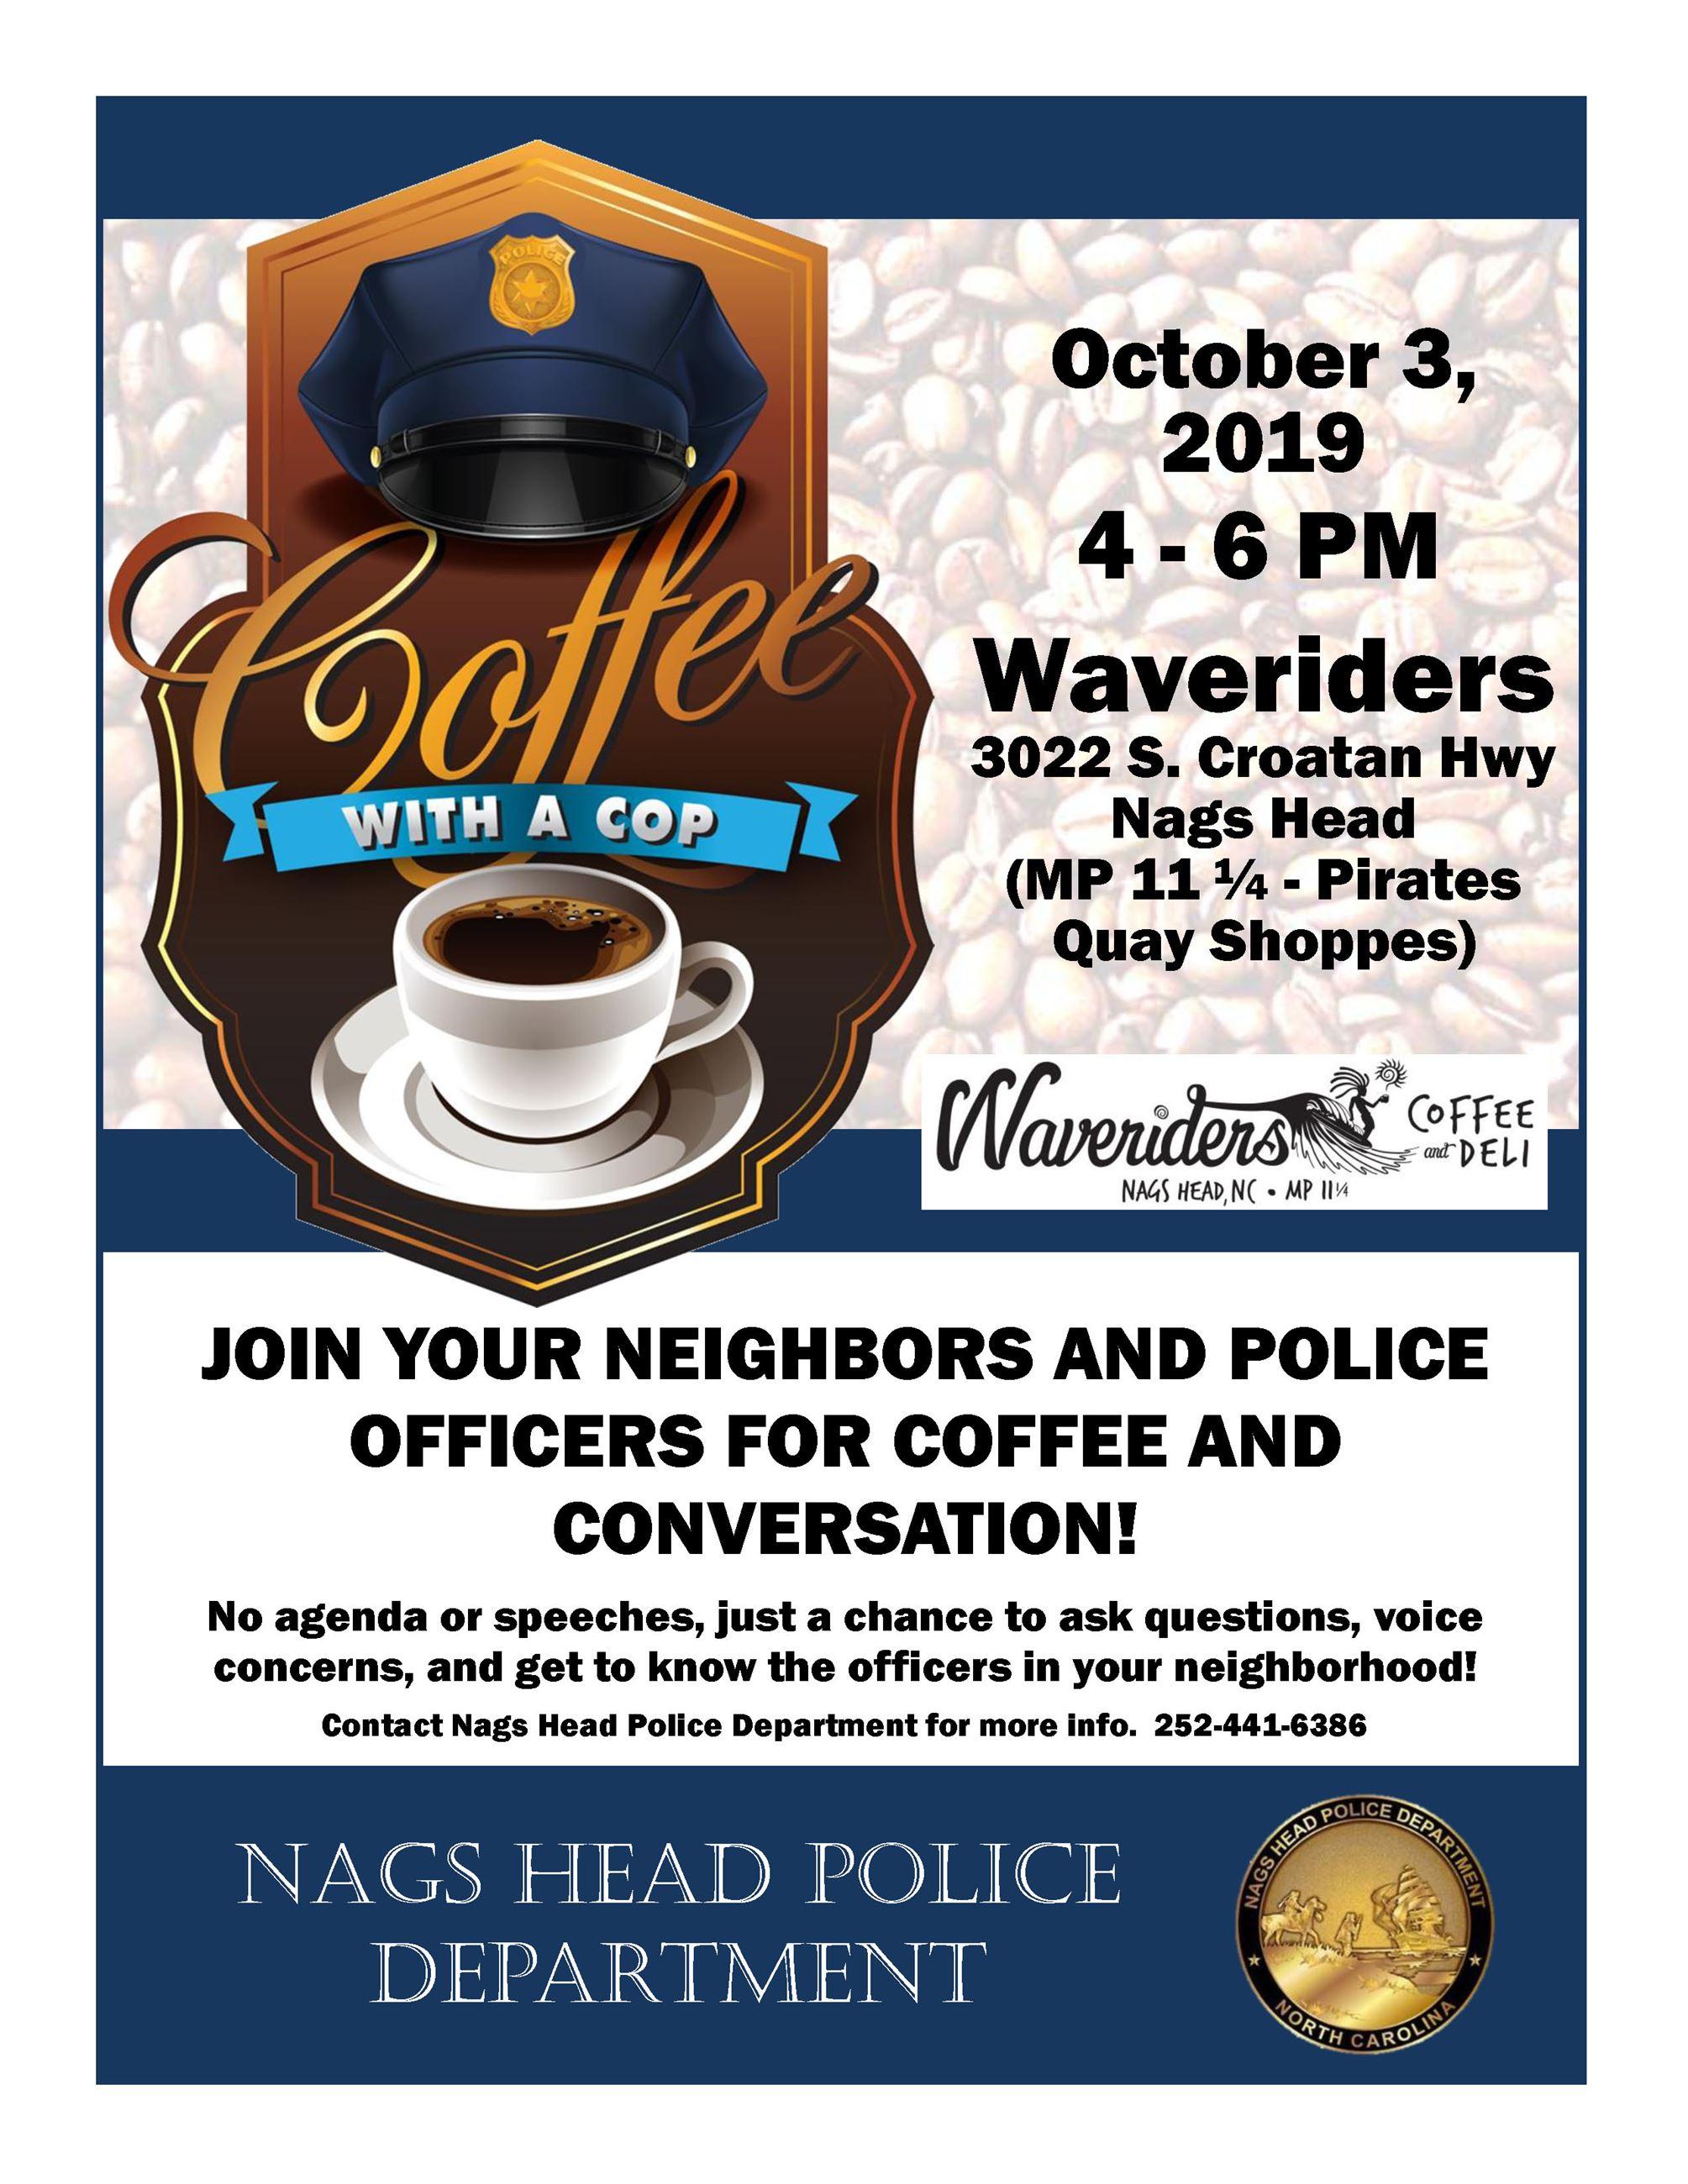 Coffee With a Cop Oct 3 2019